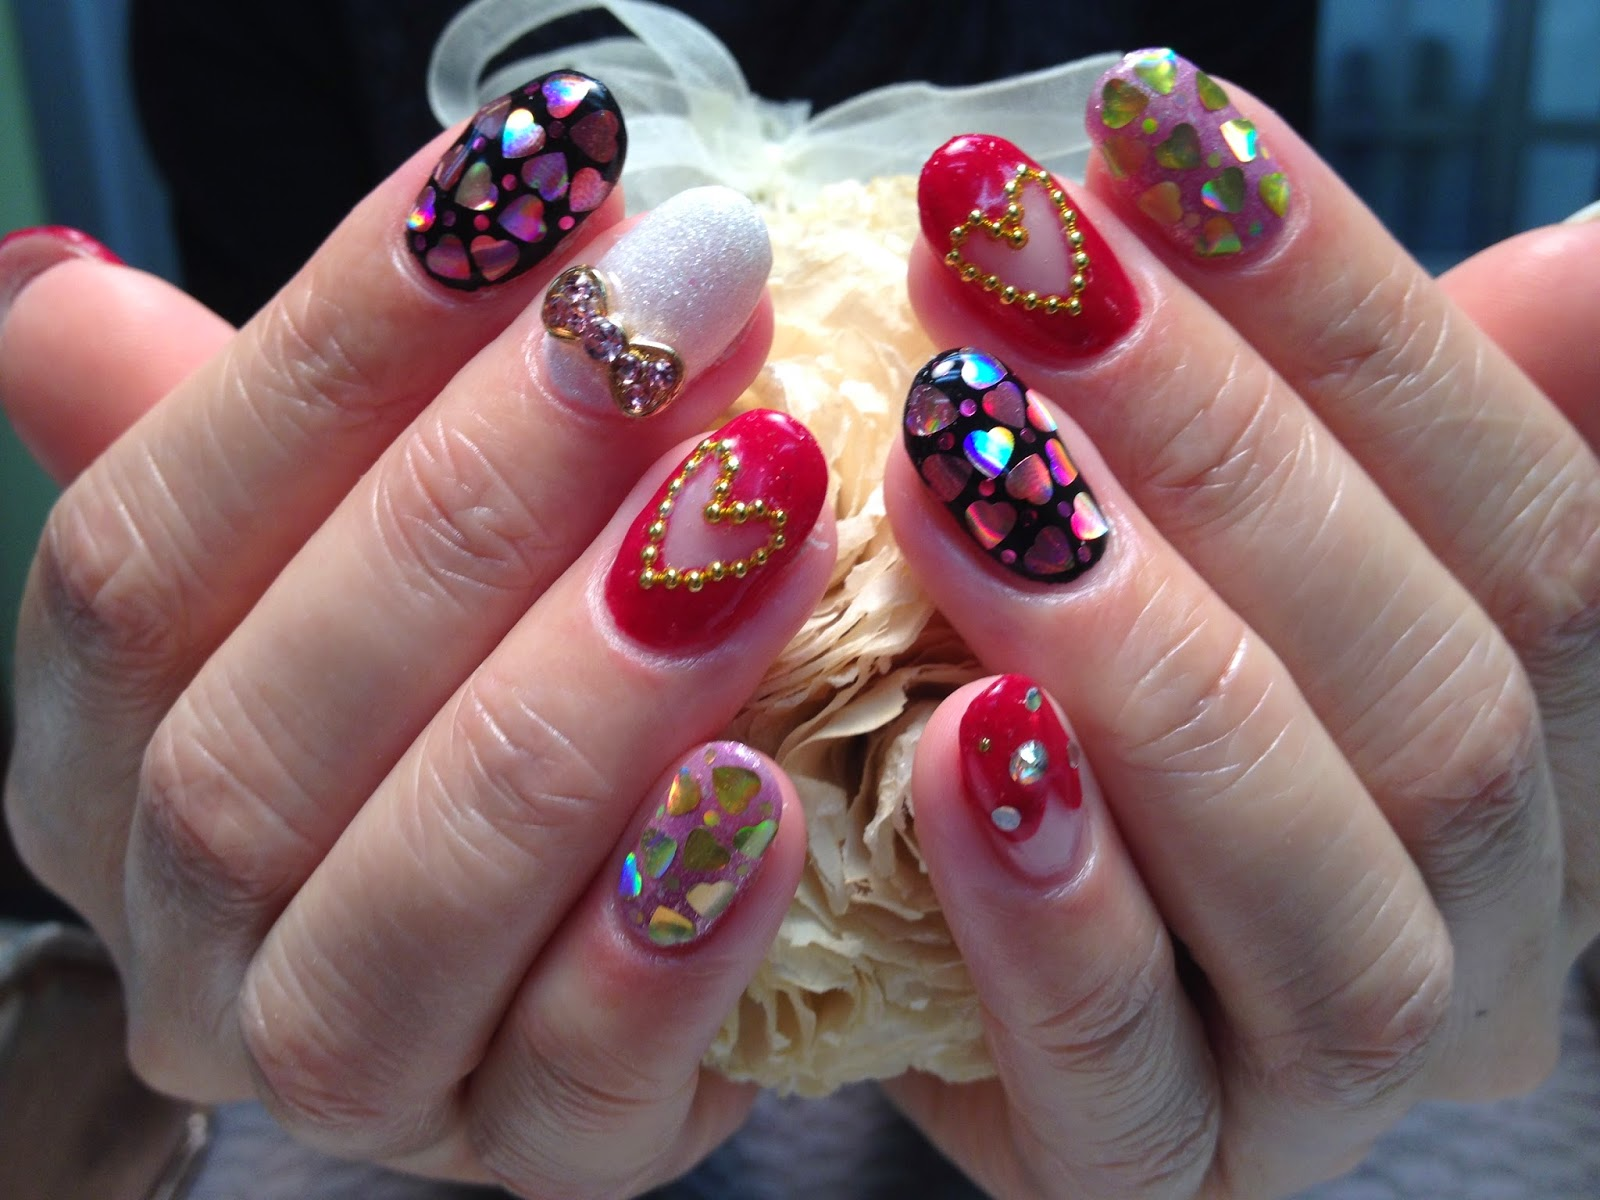 Ys nail blog spring nail designs phonetext 425 320 7261 email ysnail3gmail online bookingvagaroysnail please see the nail designs from february valentine nail designs prinsesfo Gallery